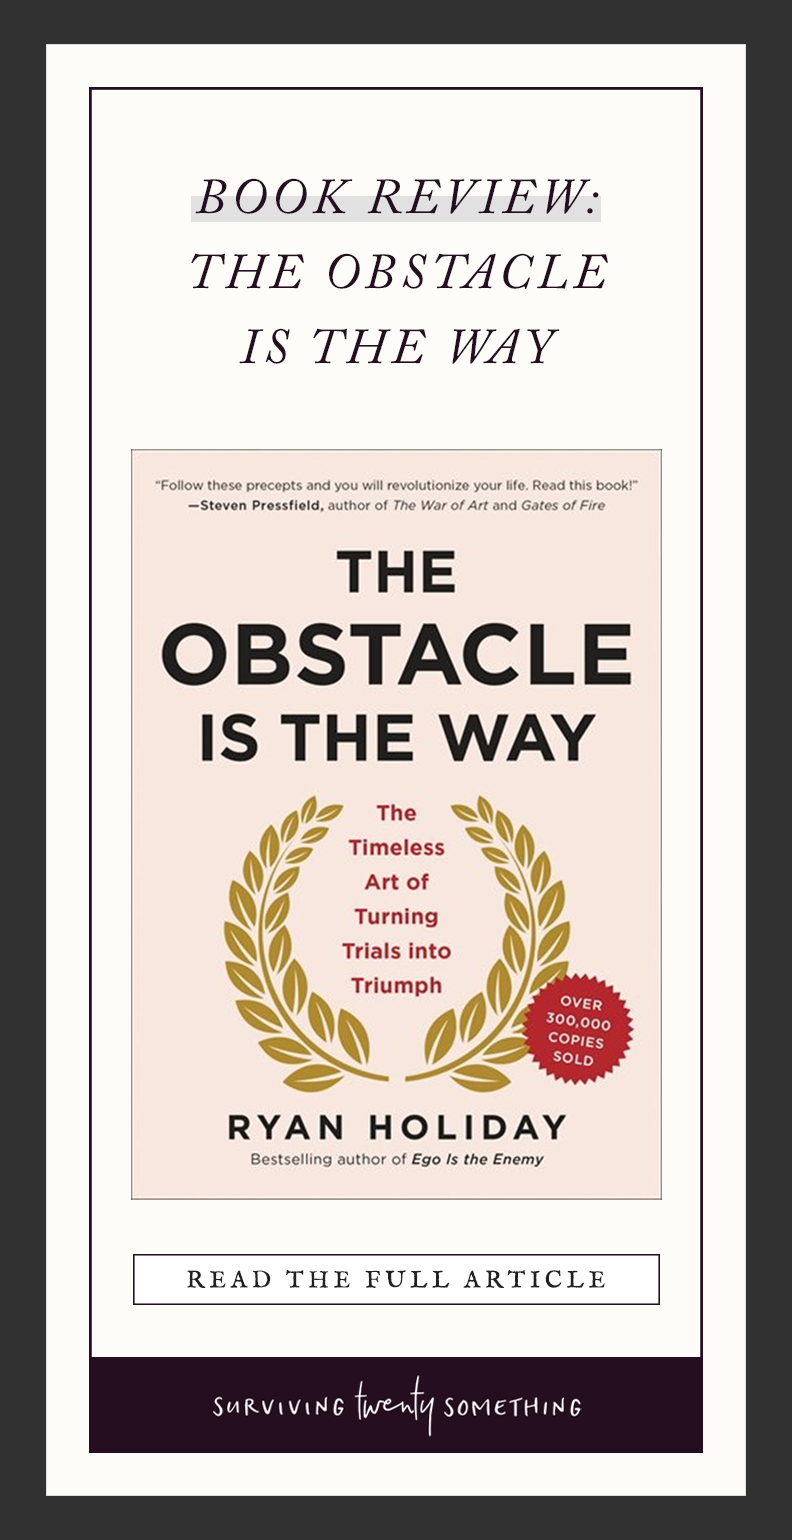 BOOK REVIEW: THE OBSTACLE IS THE WAY // The Obstacle is the Way is not strictly an exploration of Stoicism, but digs down into one facet of the philosophy— what to do when shit gets in one's way. Holiday presents a series or short, digestible chapters (most of which could be read in about ten minutes) combining practical advice, and anecdotal stories of real, successful people applying the these parts of the Stoic philosophy to their lives.